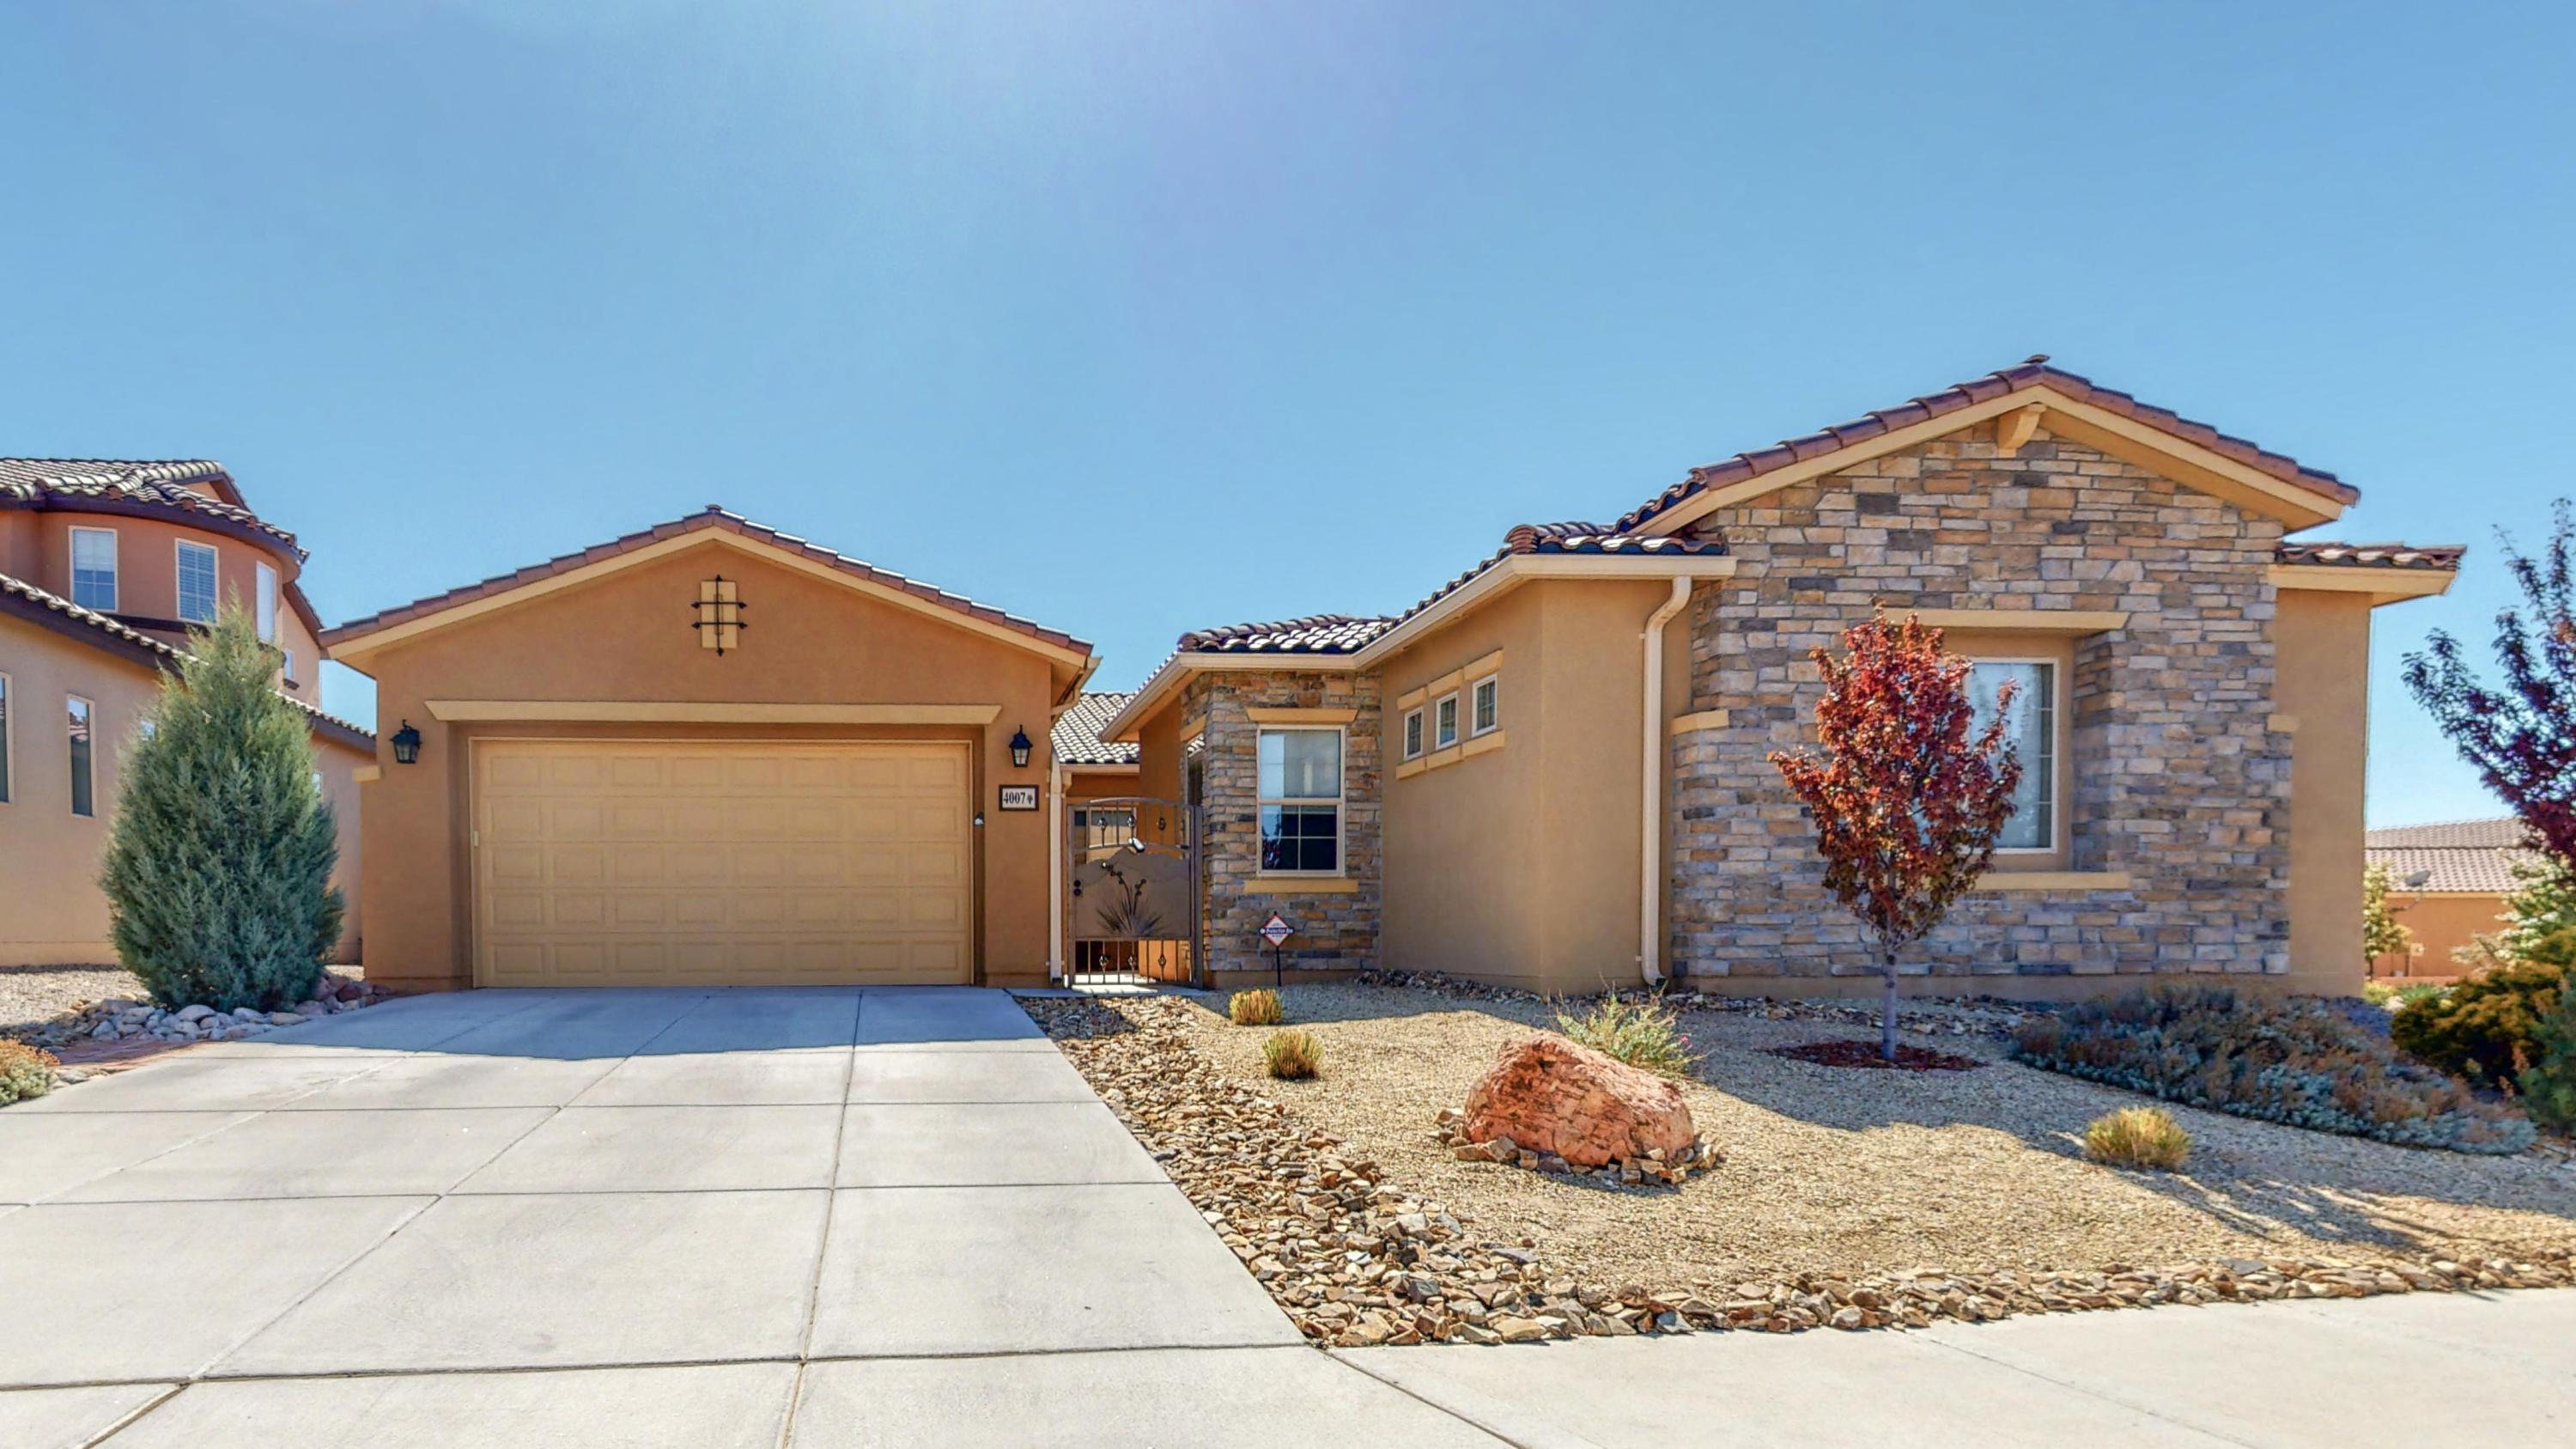 What a beauty! Enjoy natural light filtering through this immaculate 4 bedroom home. Open floor plan with extra living space. Kitchen is spacious with granite countertops and stainless steel appliances. Built-in stove and convention oven. Large master bedroom and bathroom with walk-in closet, double sinks and separate shower and garden tub. Fully landscaped and low-maintenance front and back yard. Don't miss out!